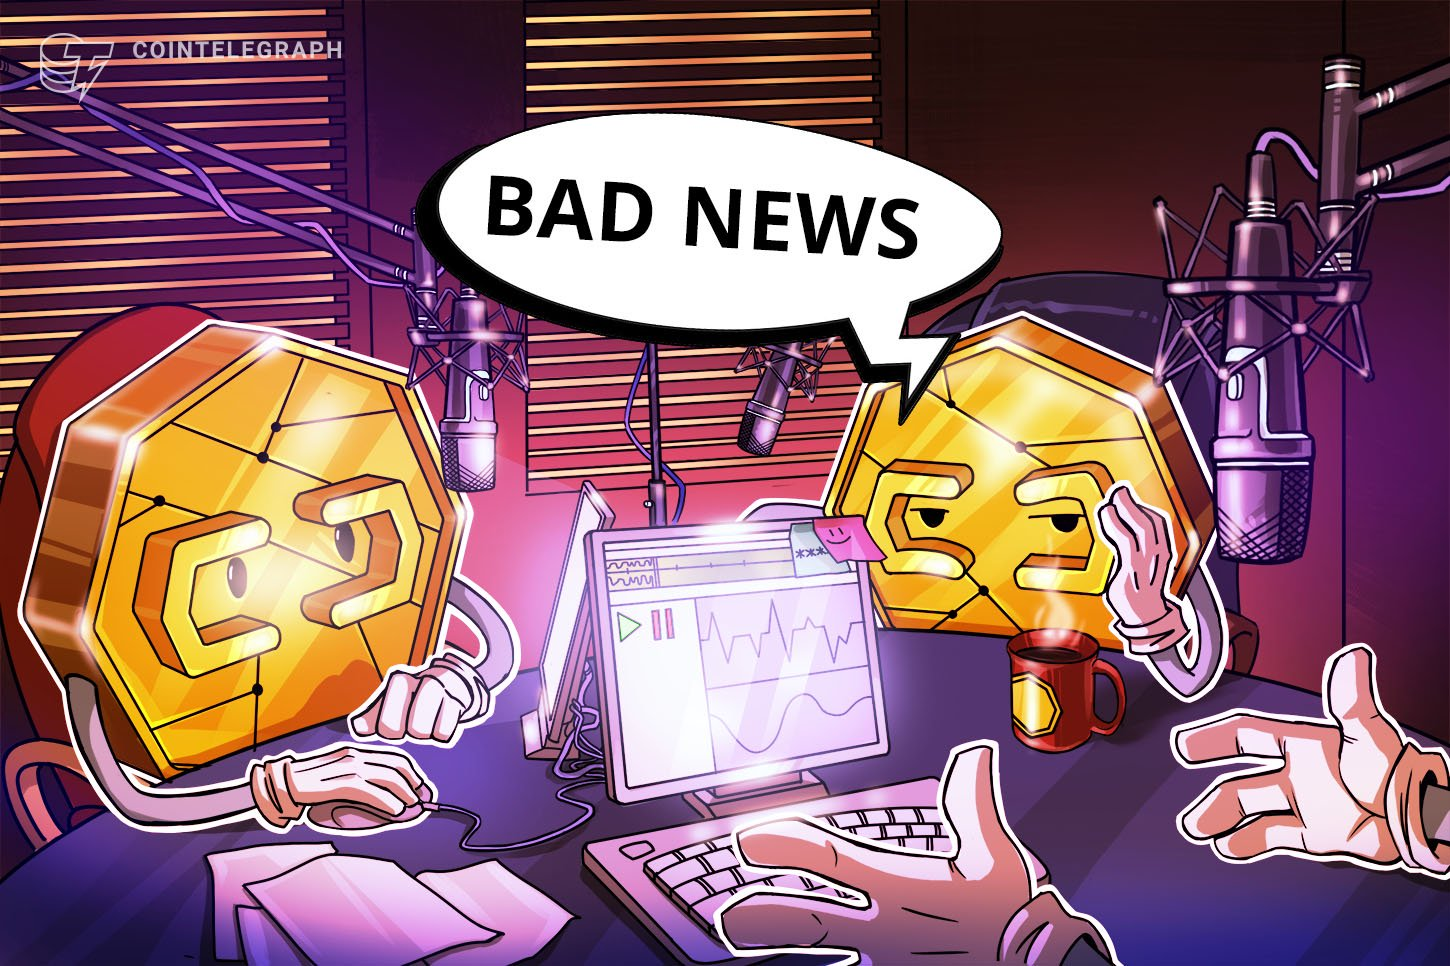 Amid election throes, Bitcoin goes: Bad Crypto news of the week - Cointelegraph